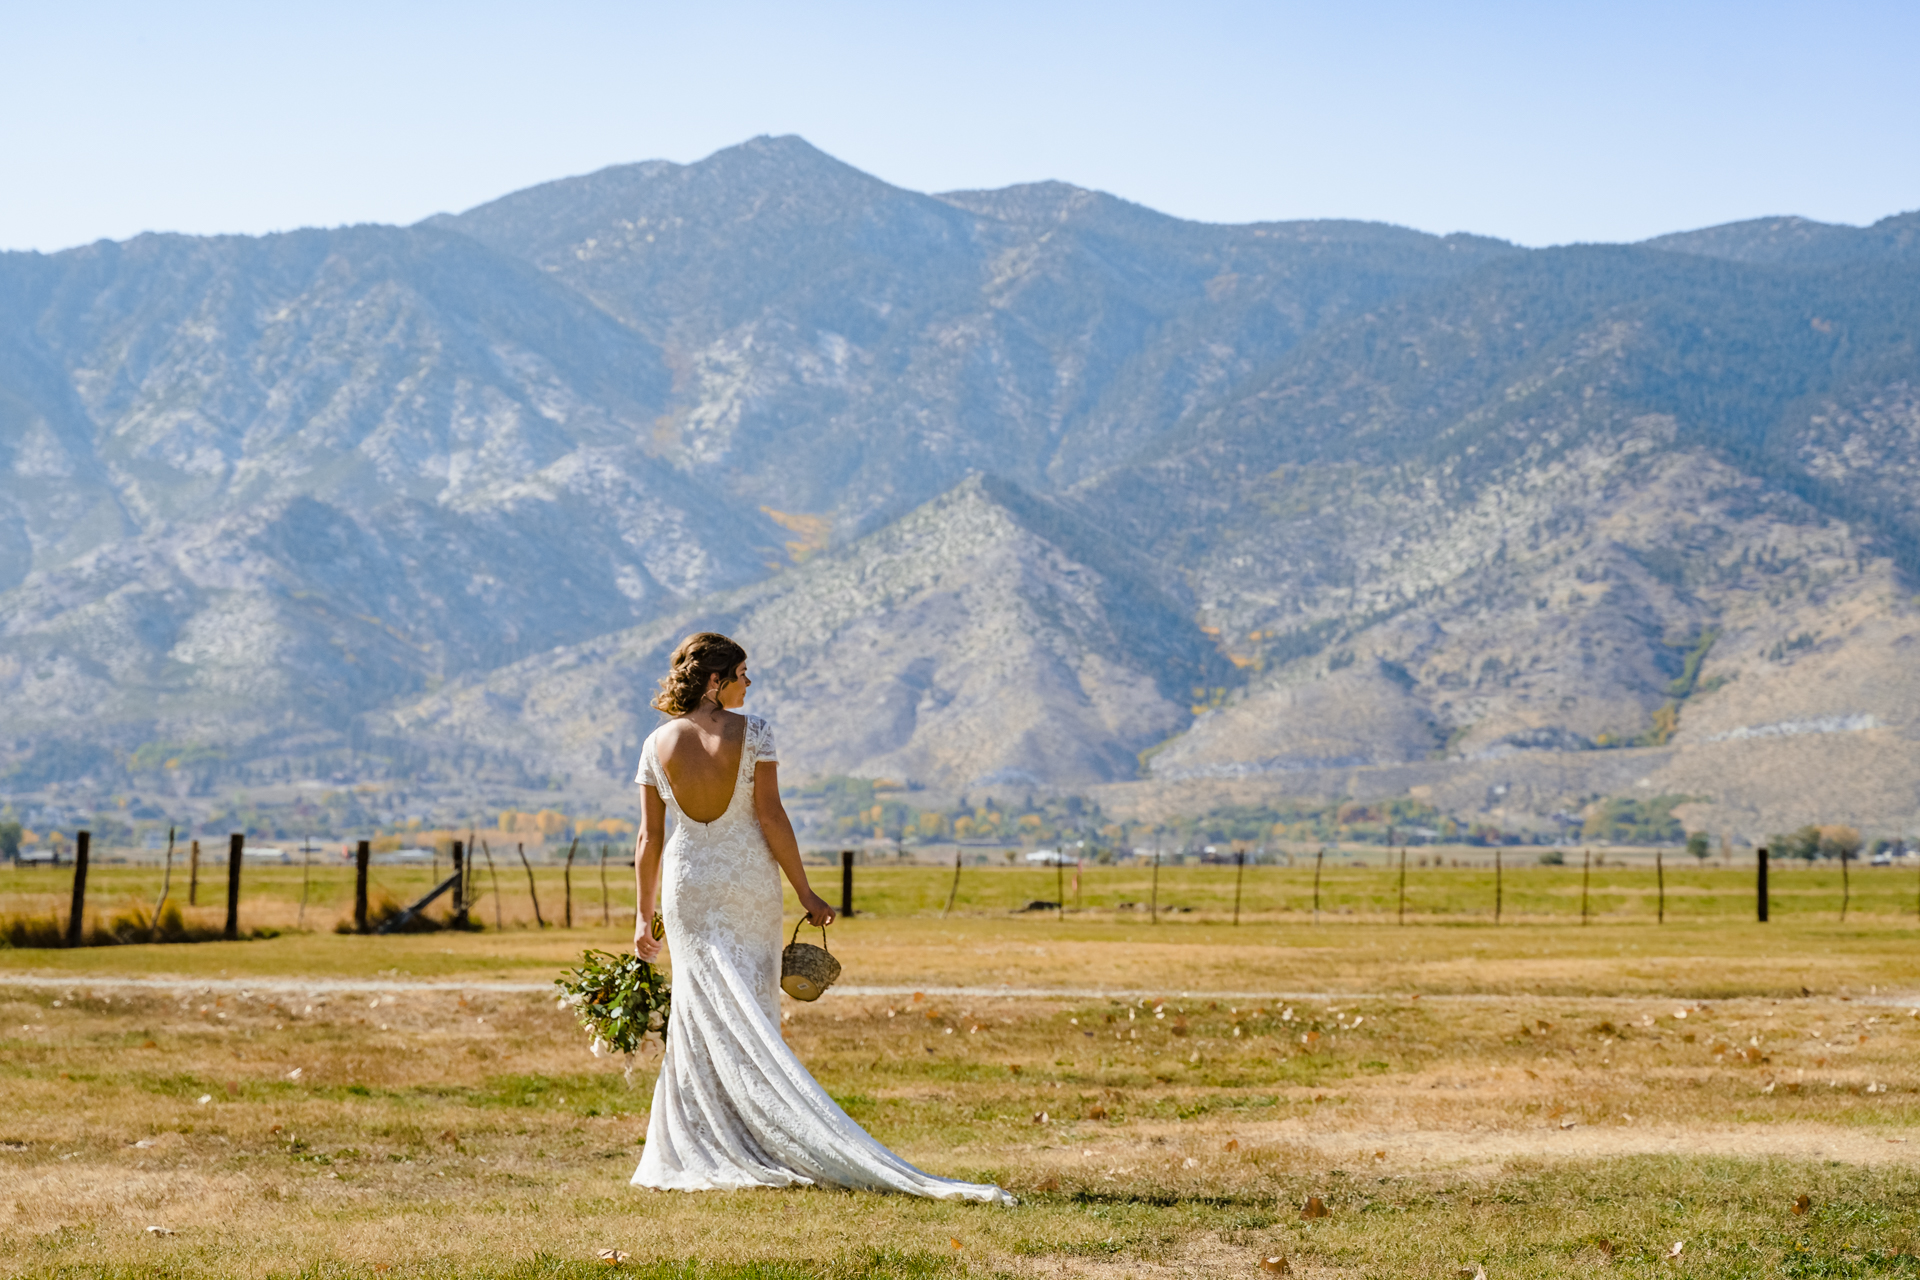 Dangberg Ranch Bridal Portrait, NV | Mountain backdrop with a stunning view